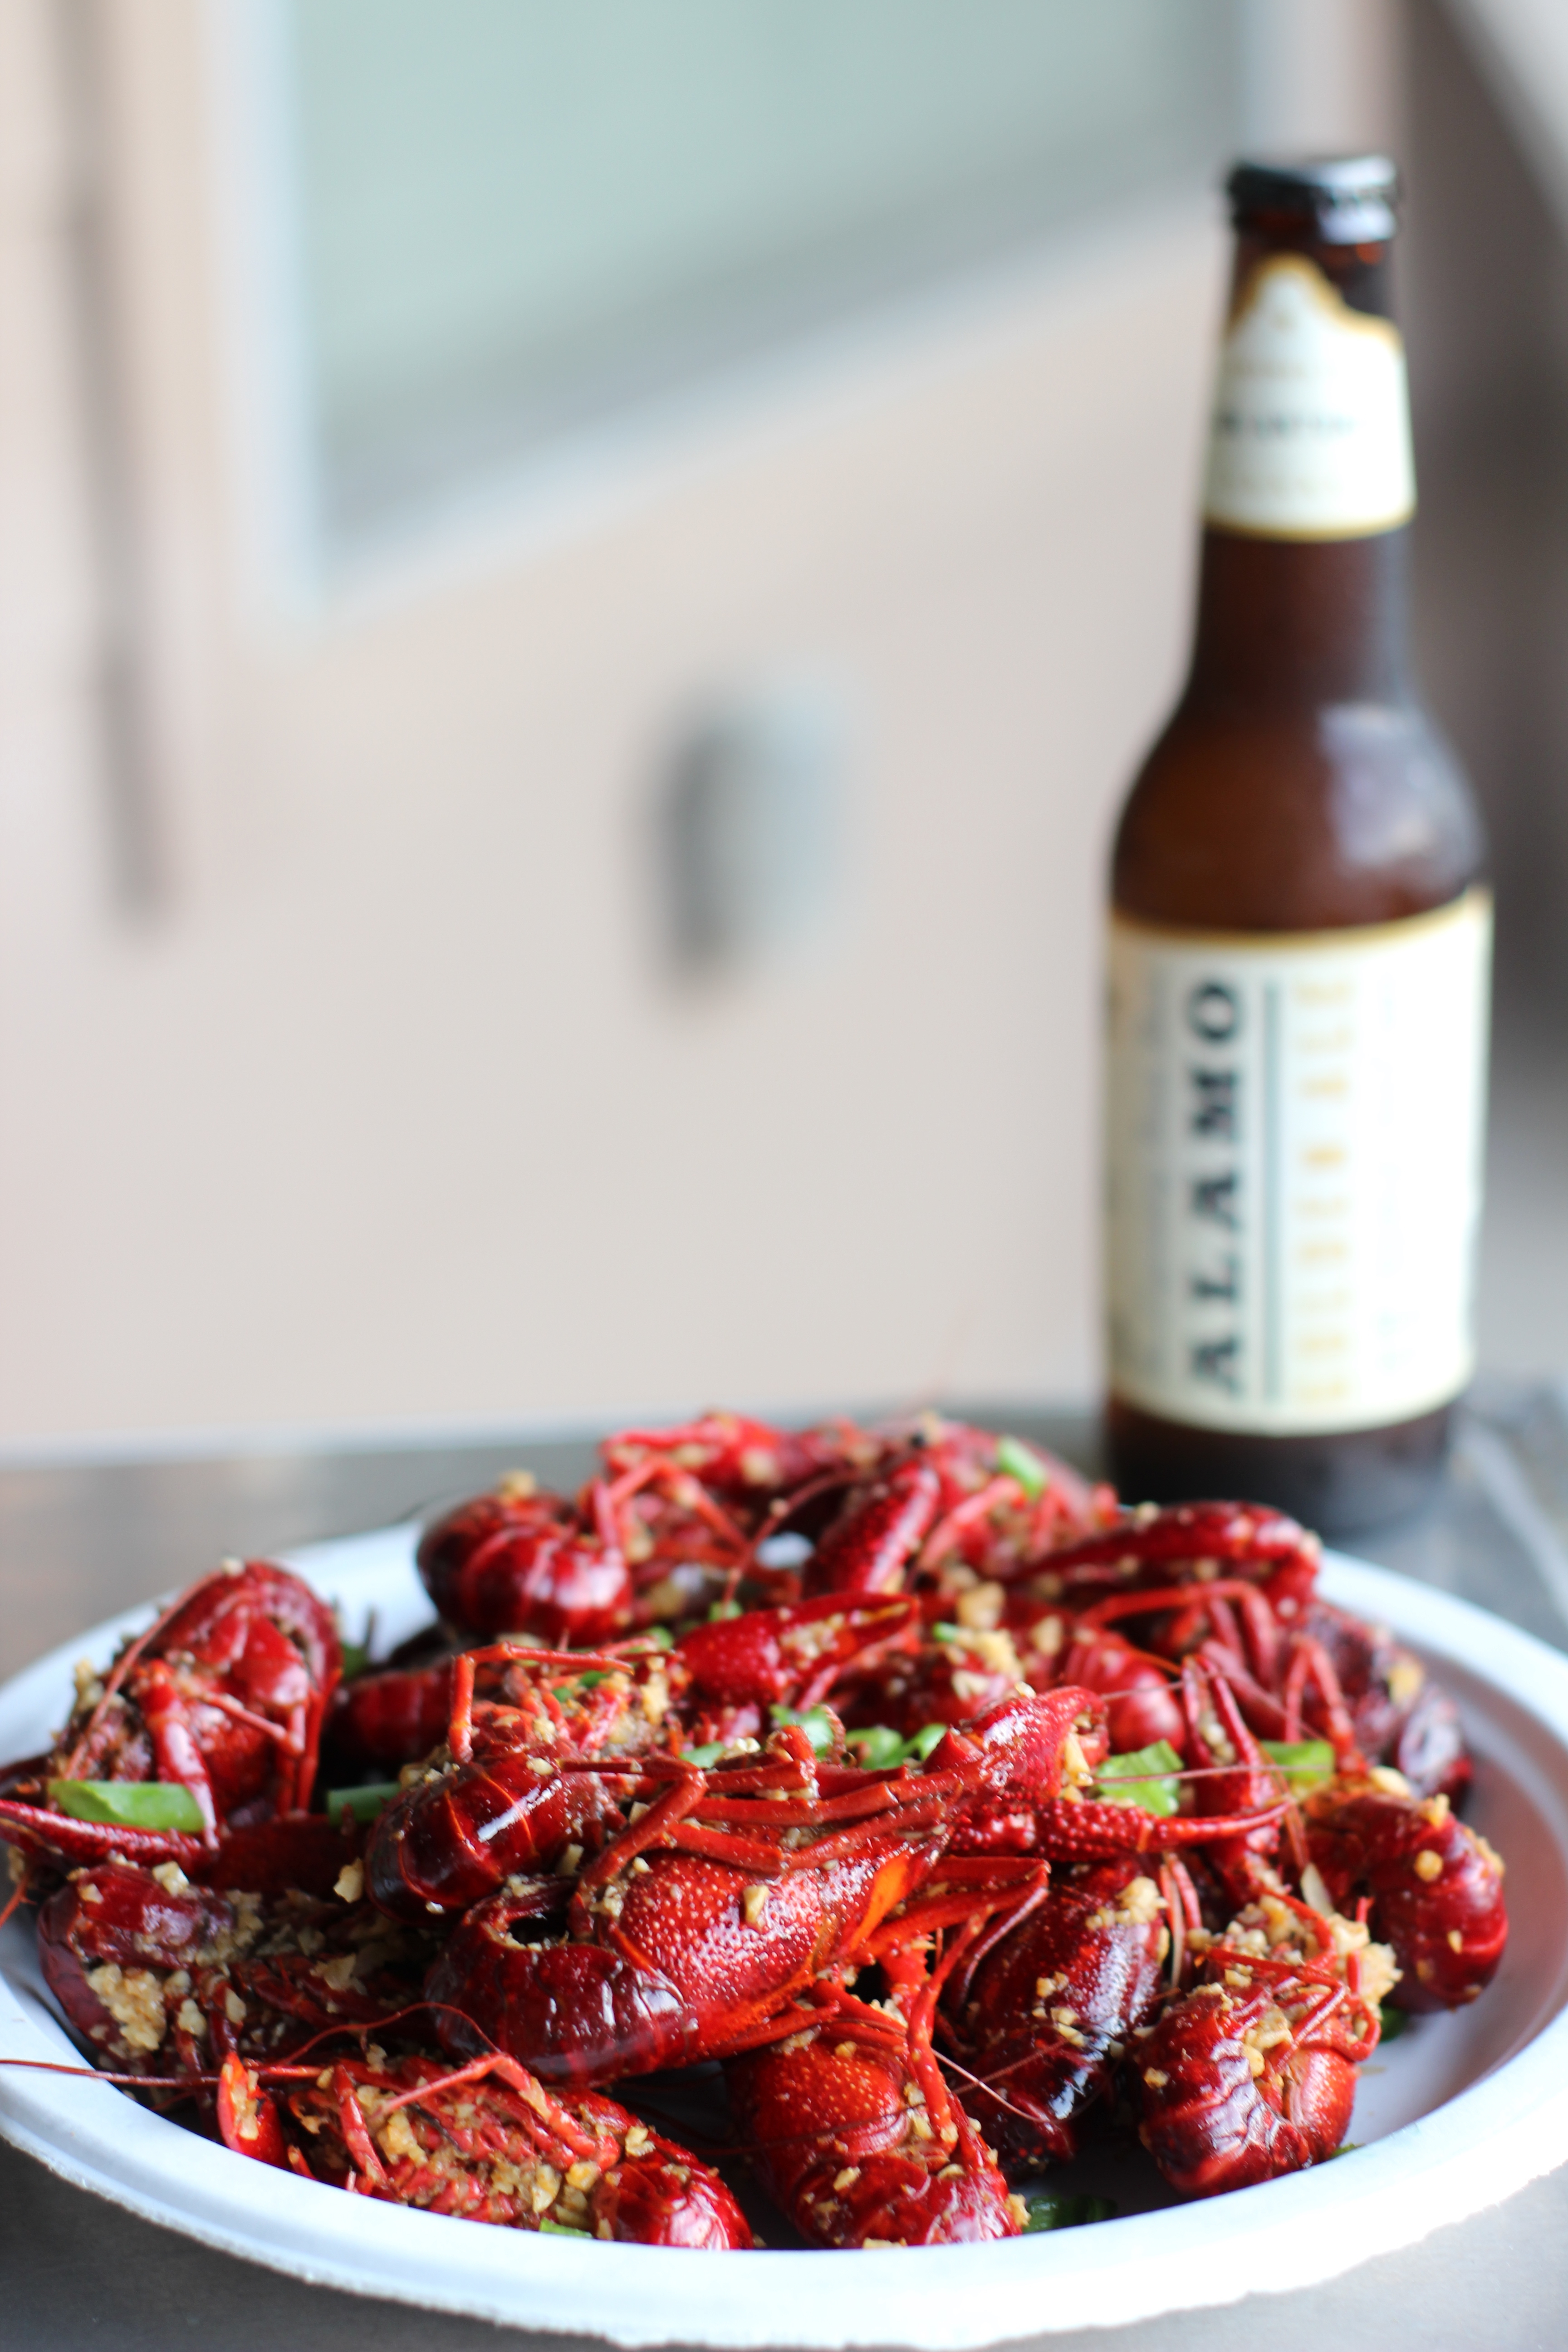 Pinch Boil House's crawfish with garlic butter sauce